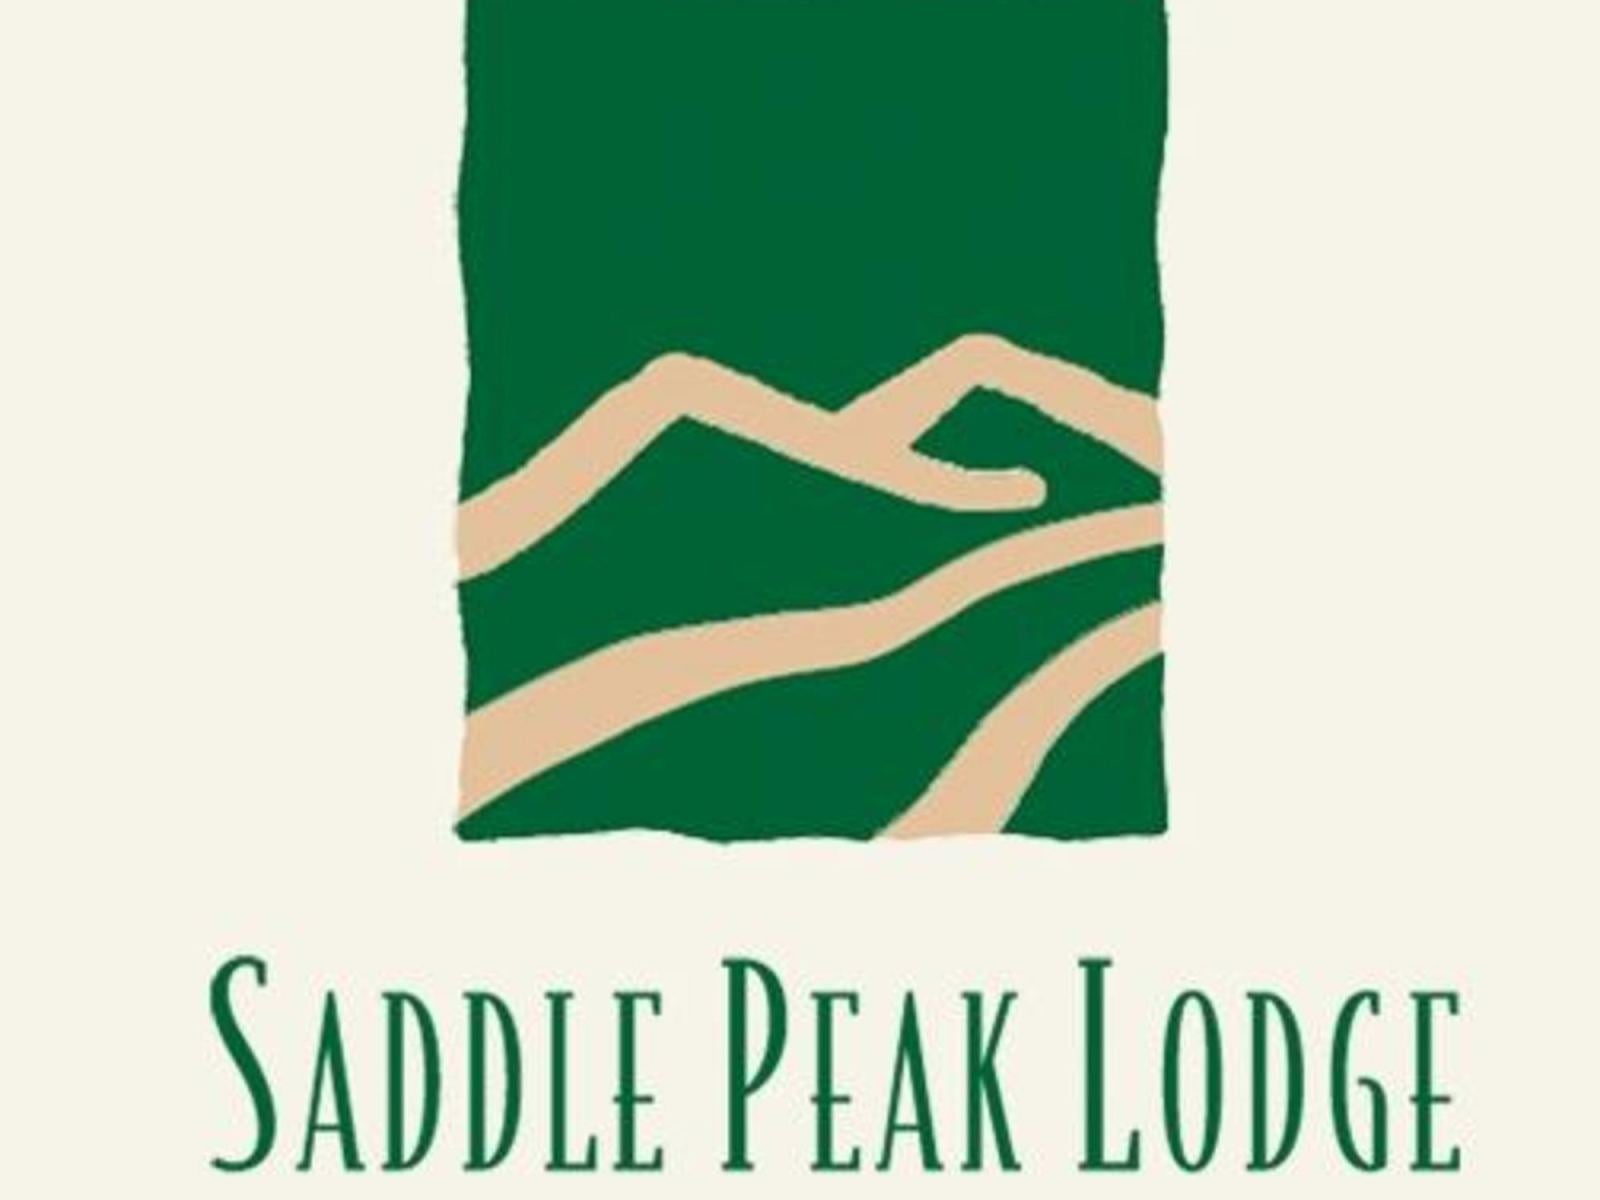 Saddle Peak Lodge